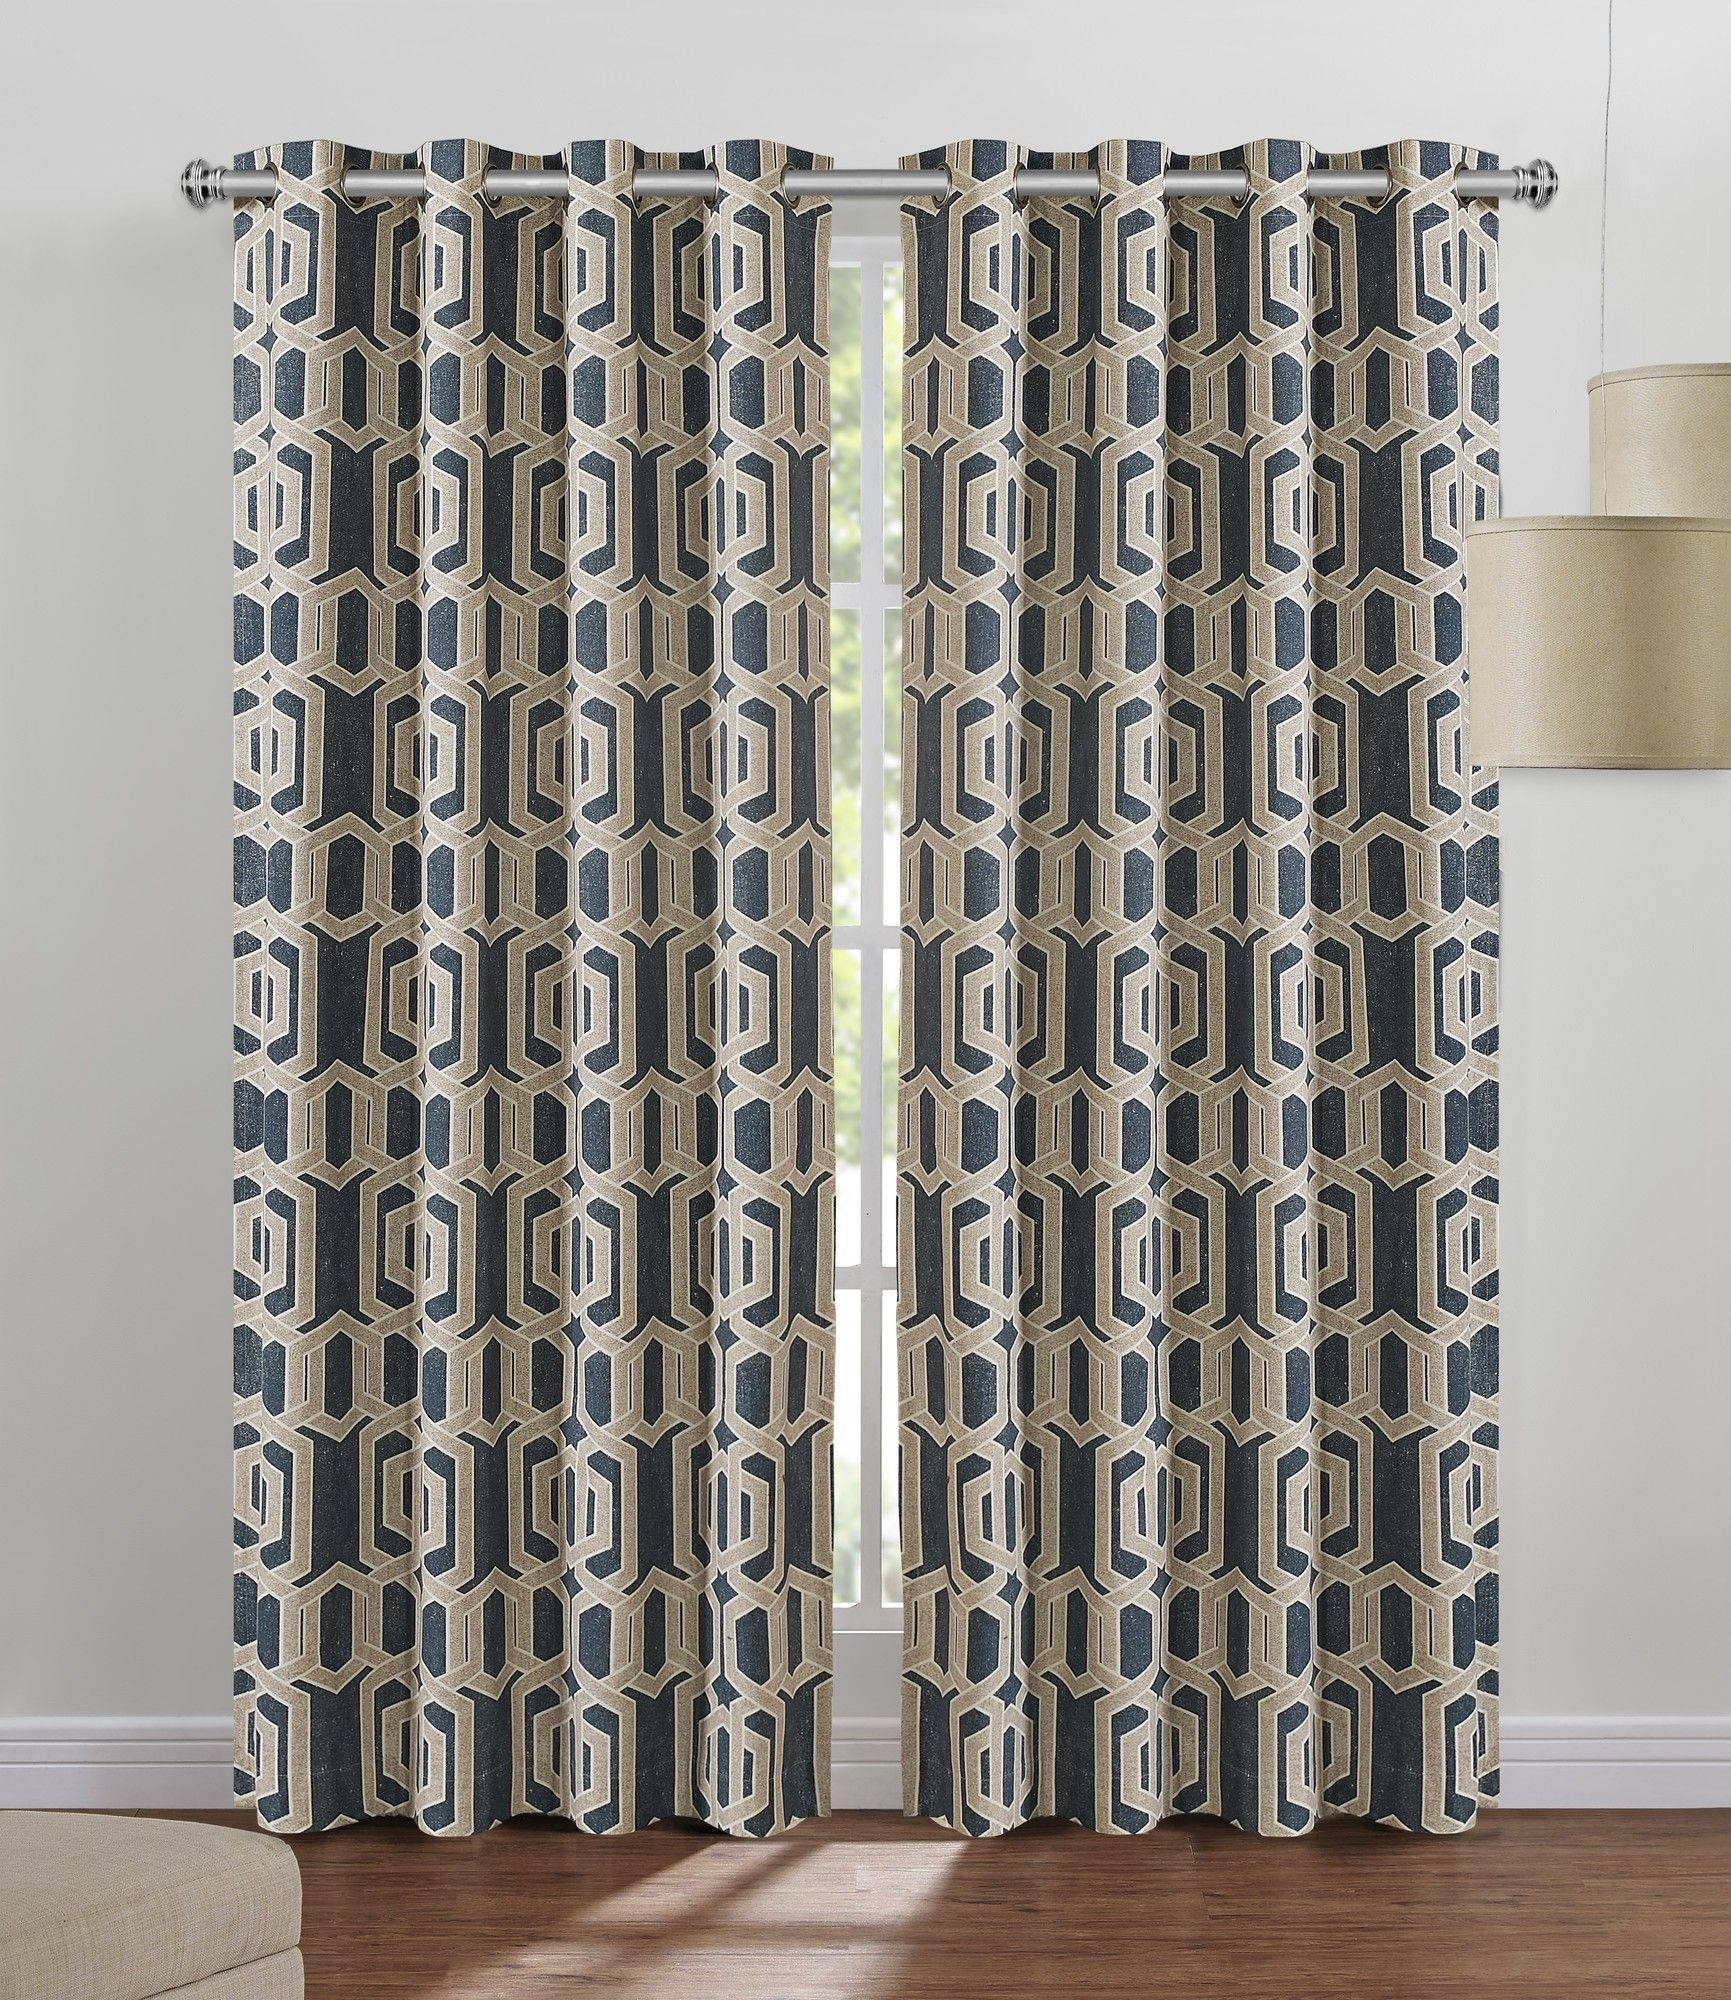 Colborn Indooroutdoor Single Curtain Panel